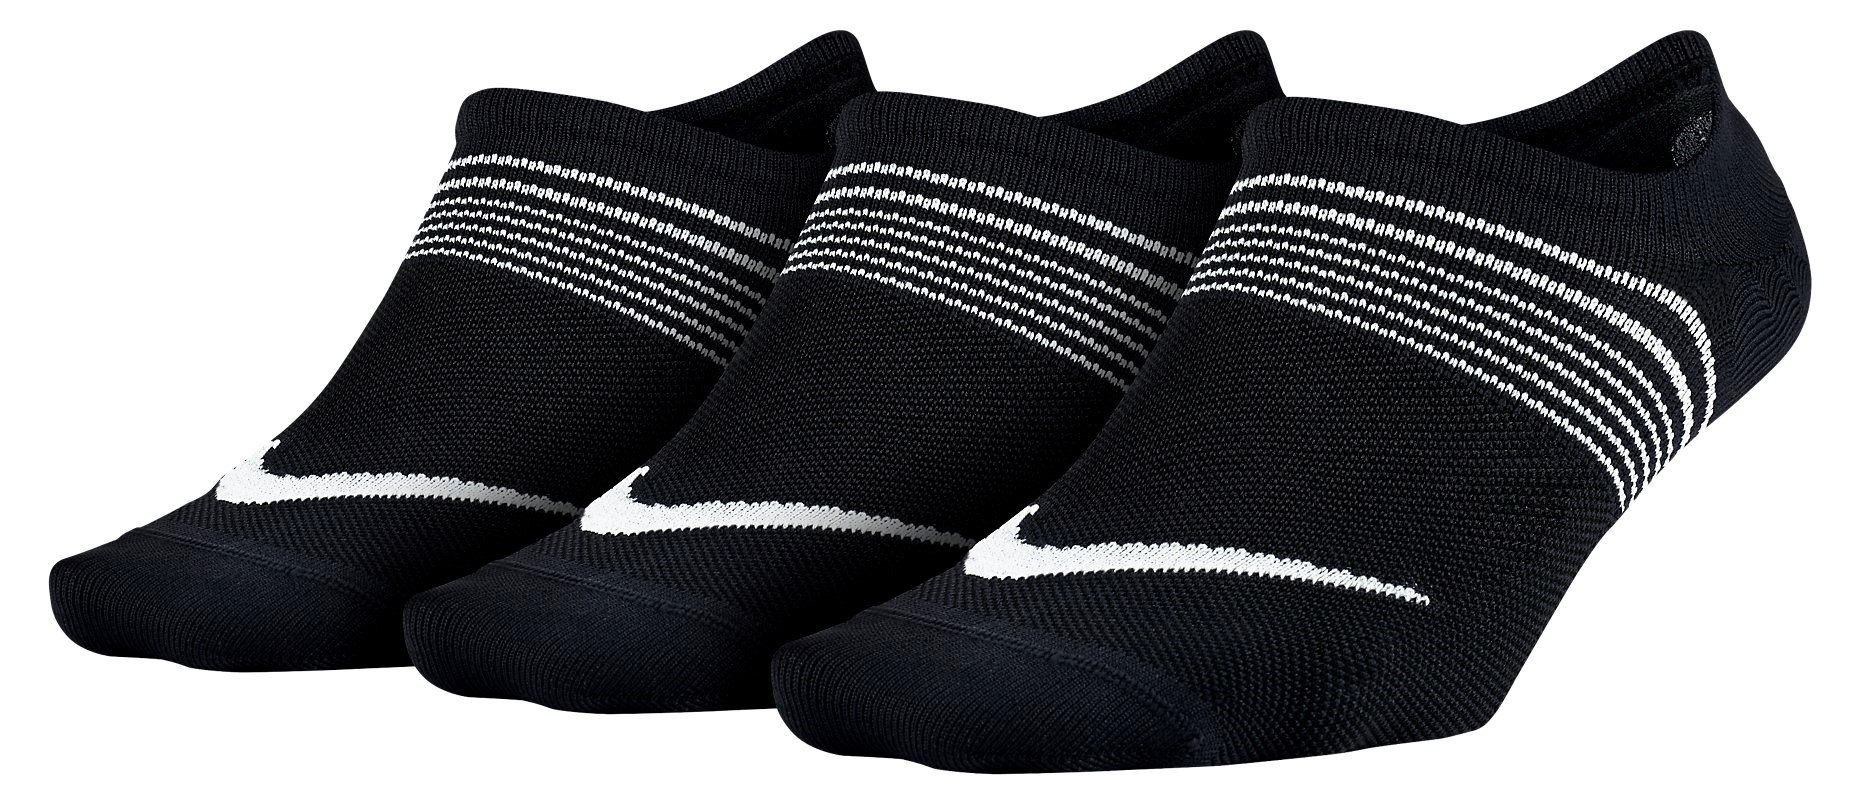 Socken Nike 3PPK WOMEN'S LIGHTWEIGHT TRAIN